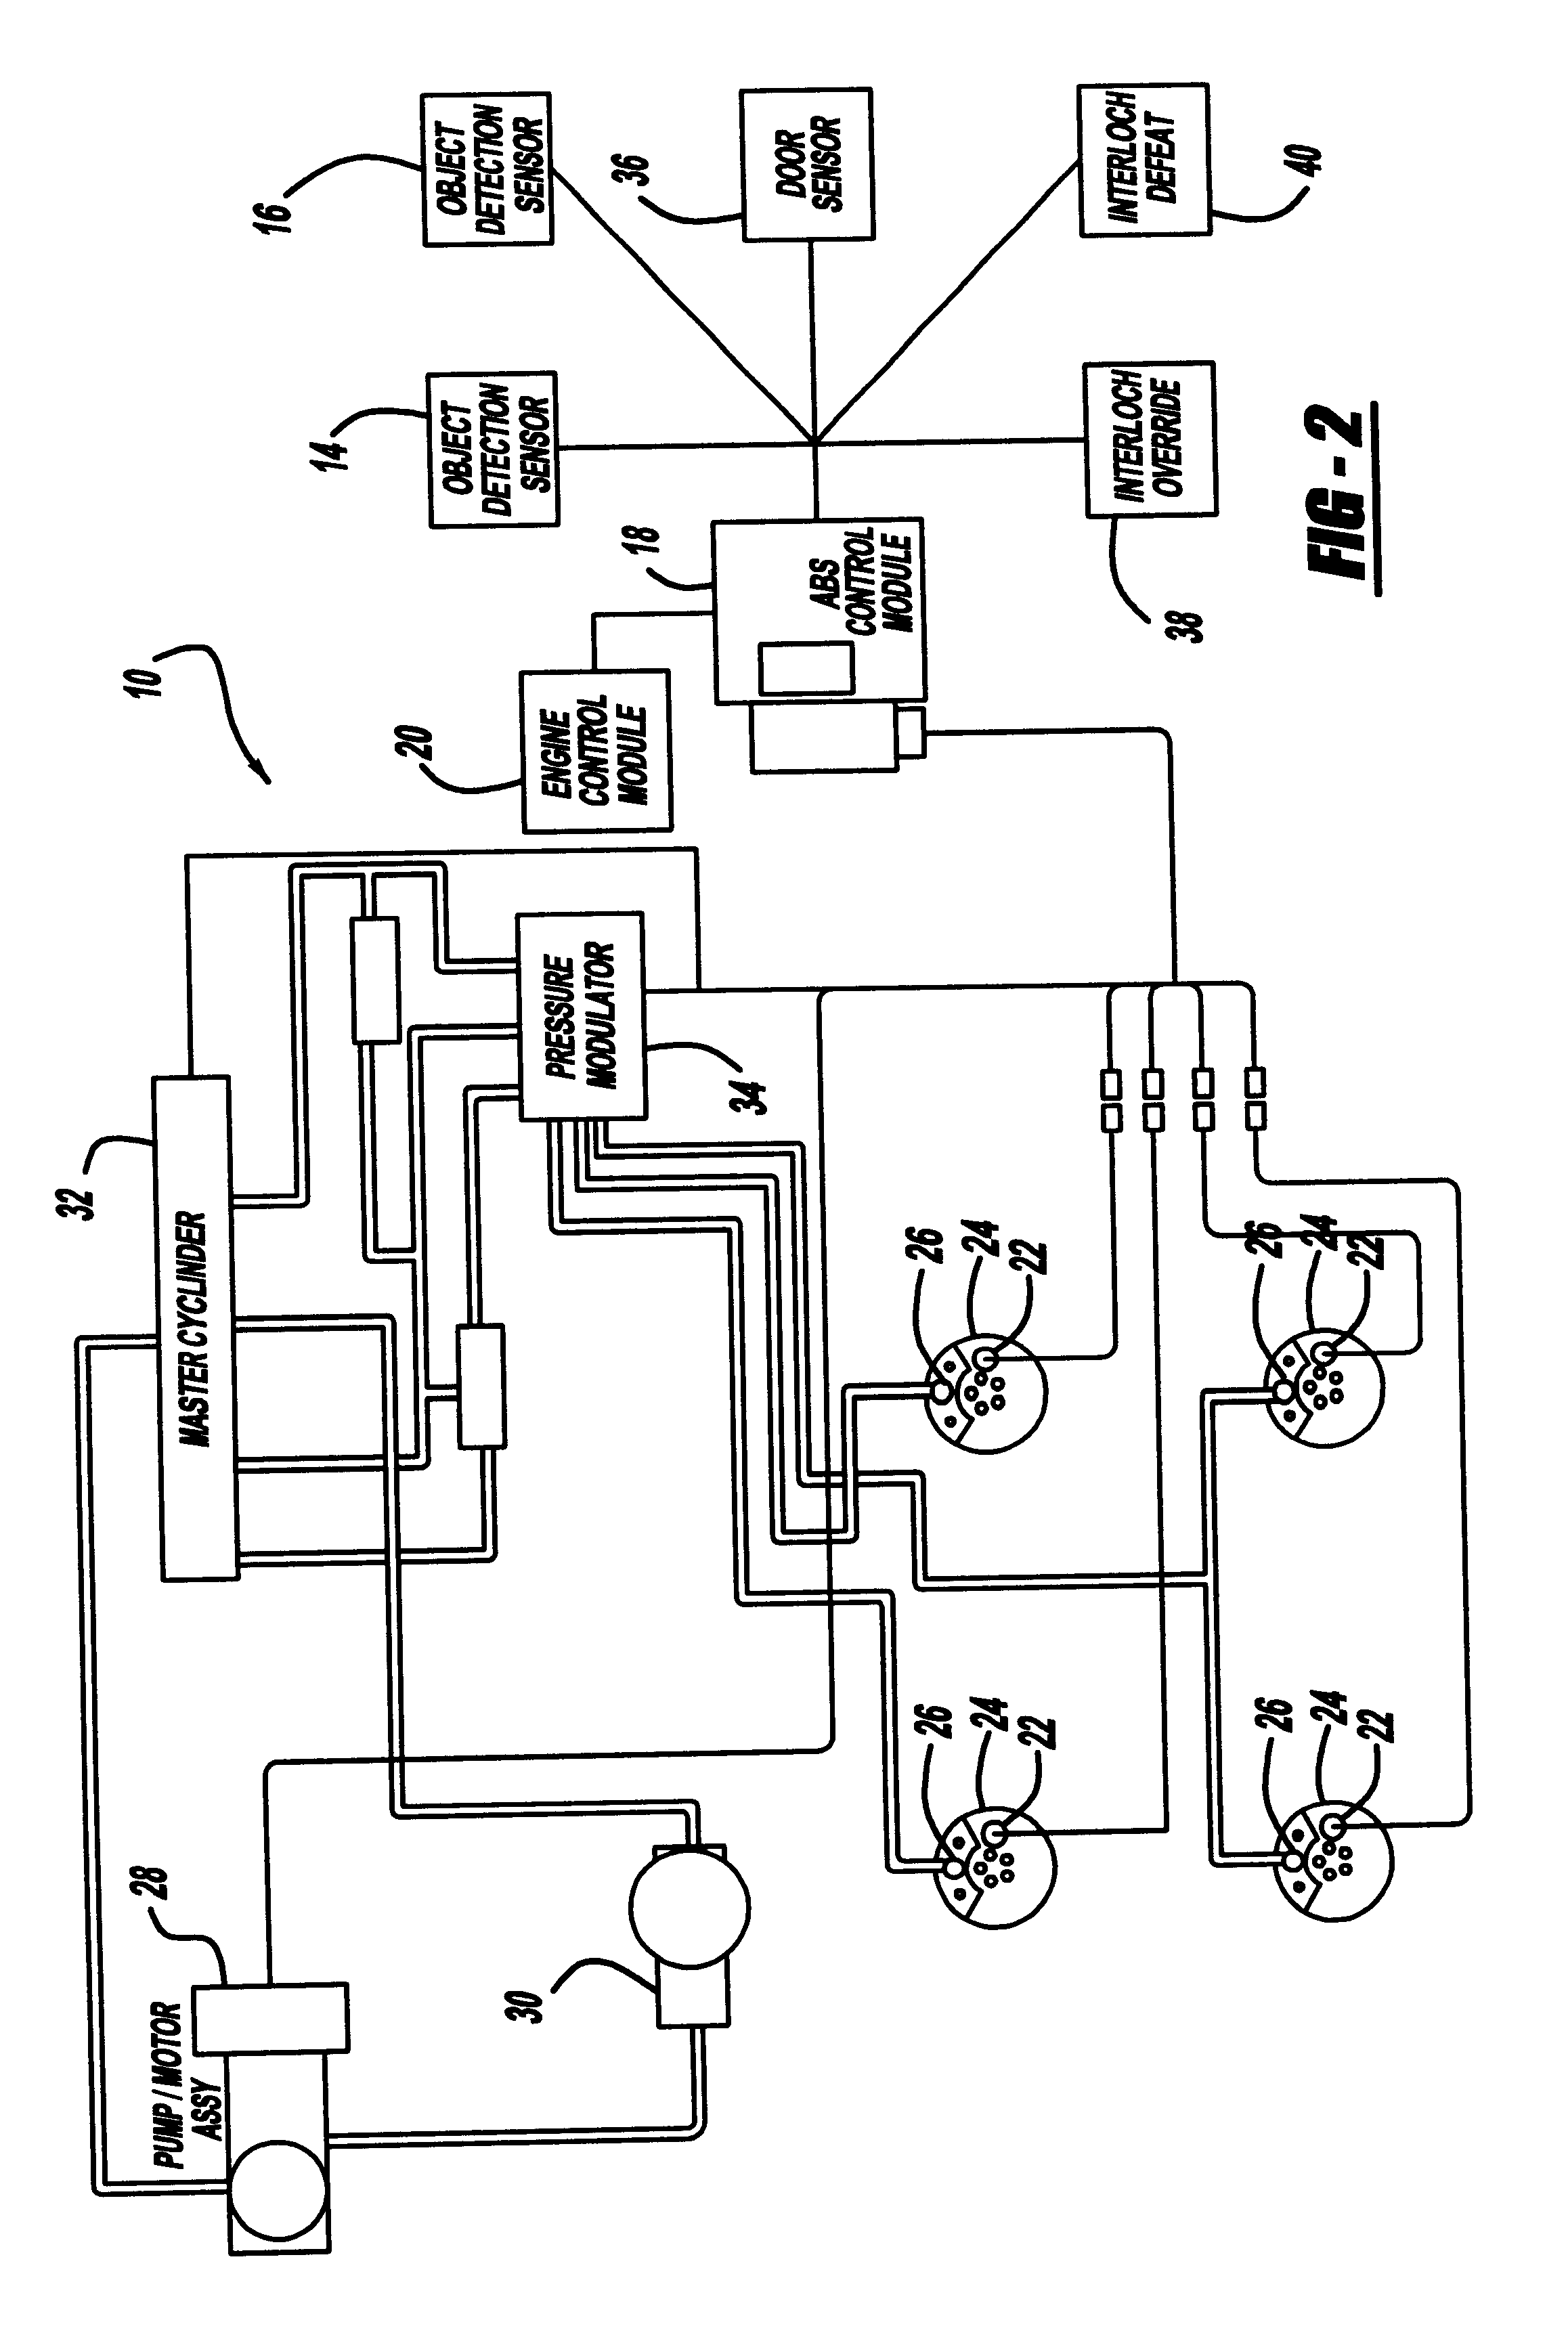 bluebird bus wiring diagram 1994